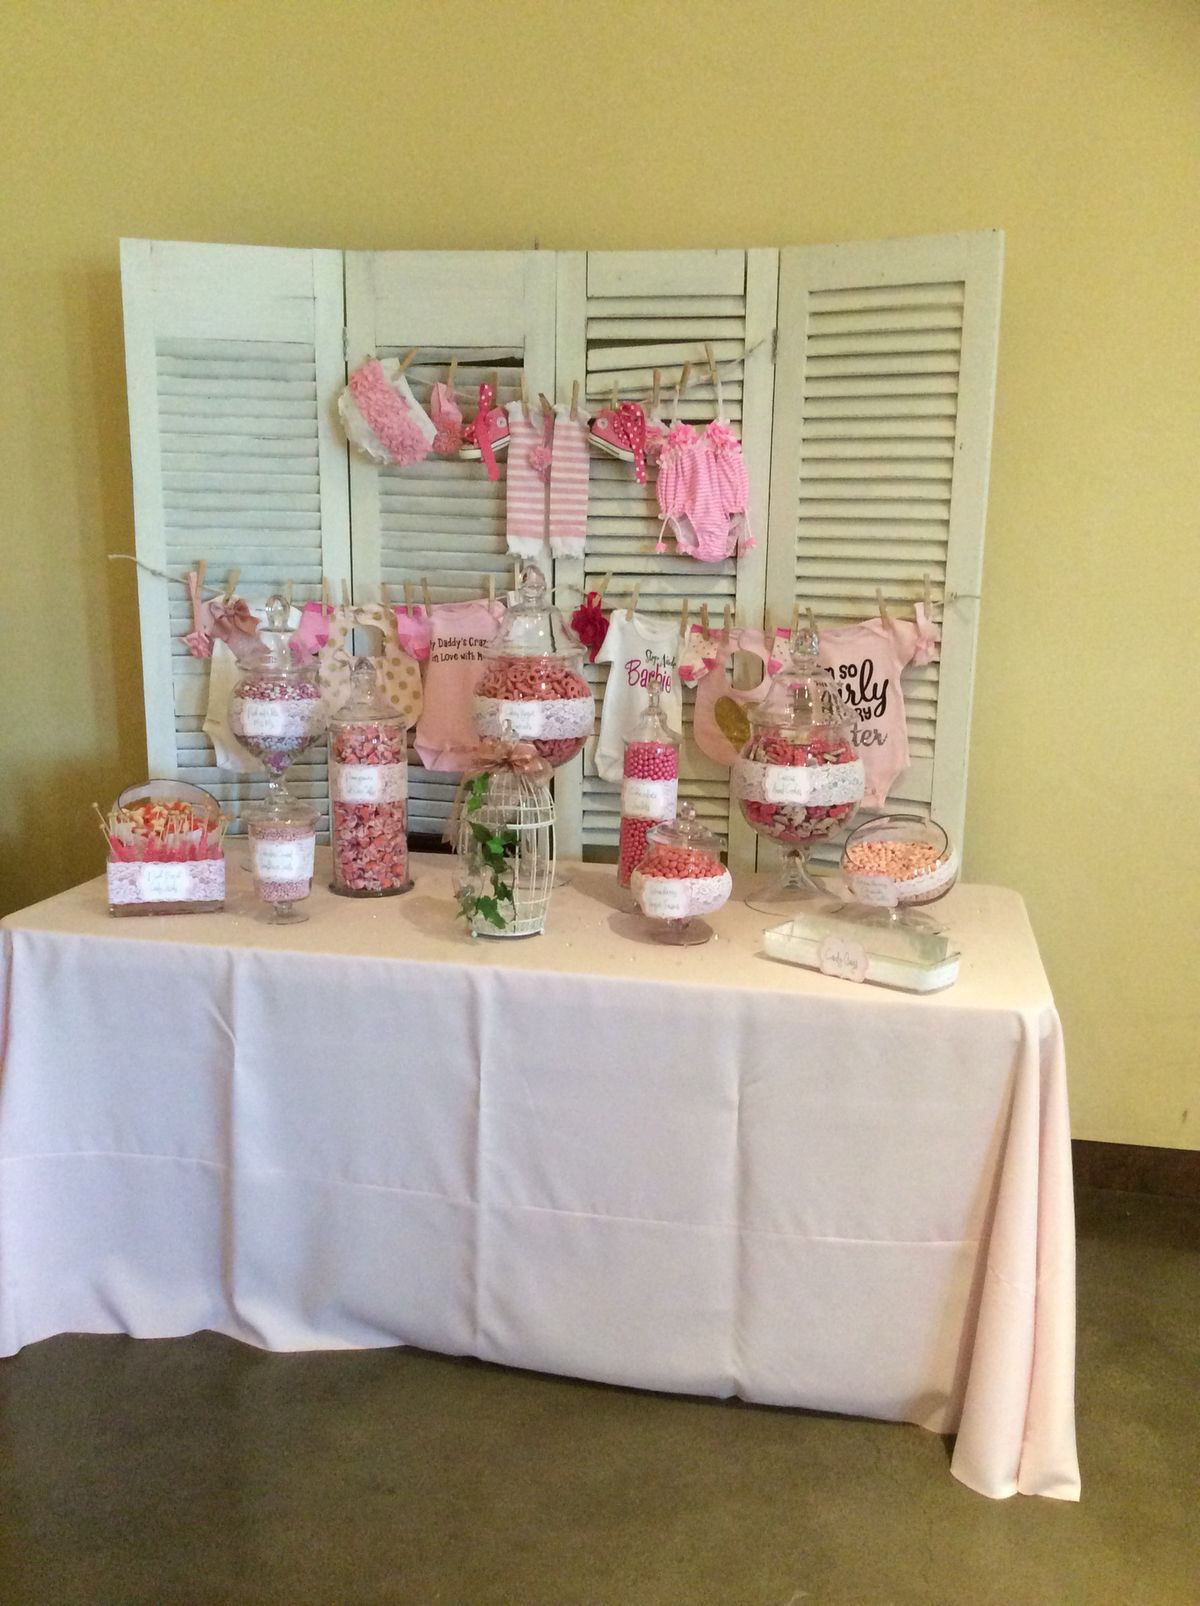 Best ideas about DIY Baby Shower Backdrop . Save or Pin DIY baby shower backdrop and candy bar Now.